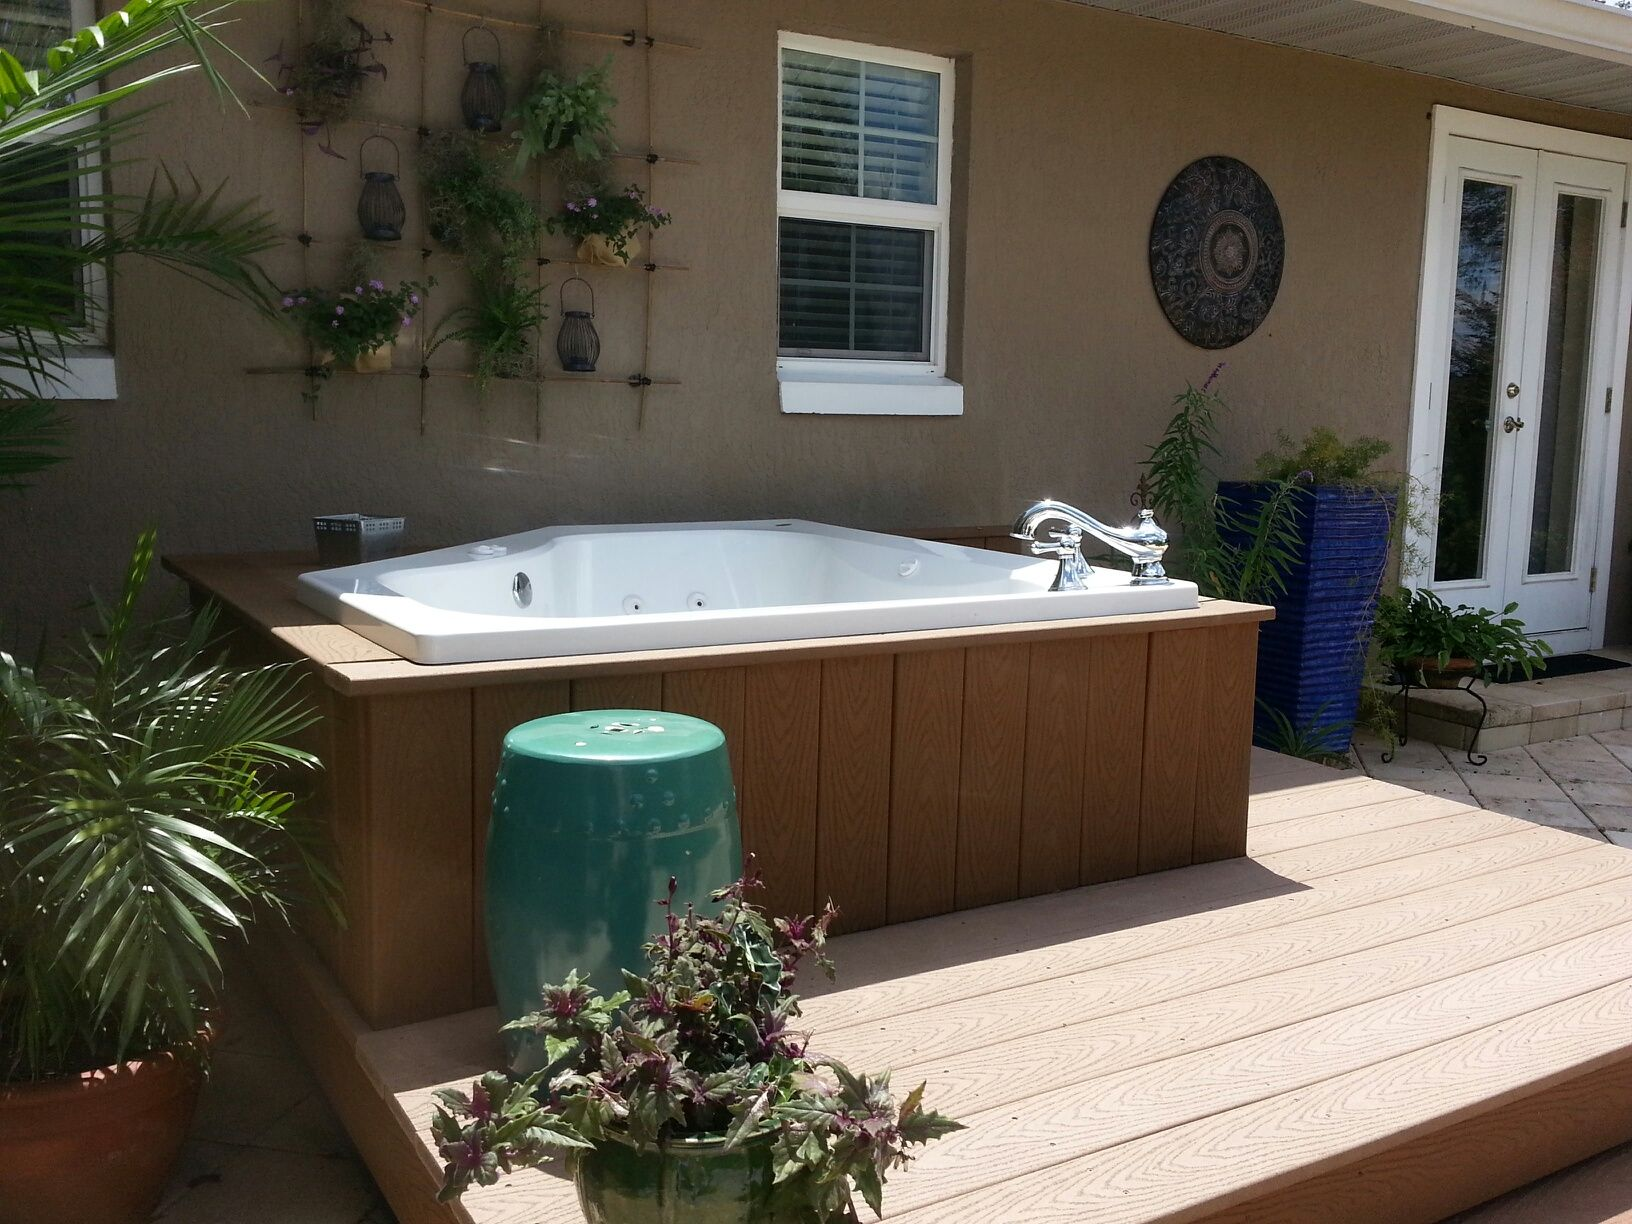 Outdoor Hot Tub  Compare Prices, Reviews And Buy At